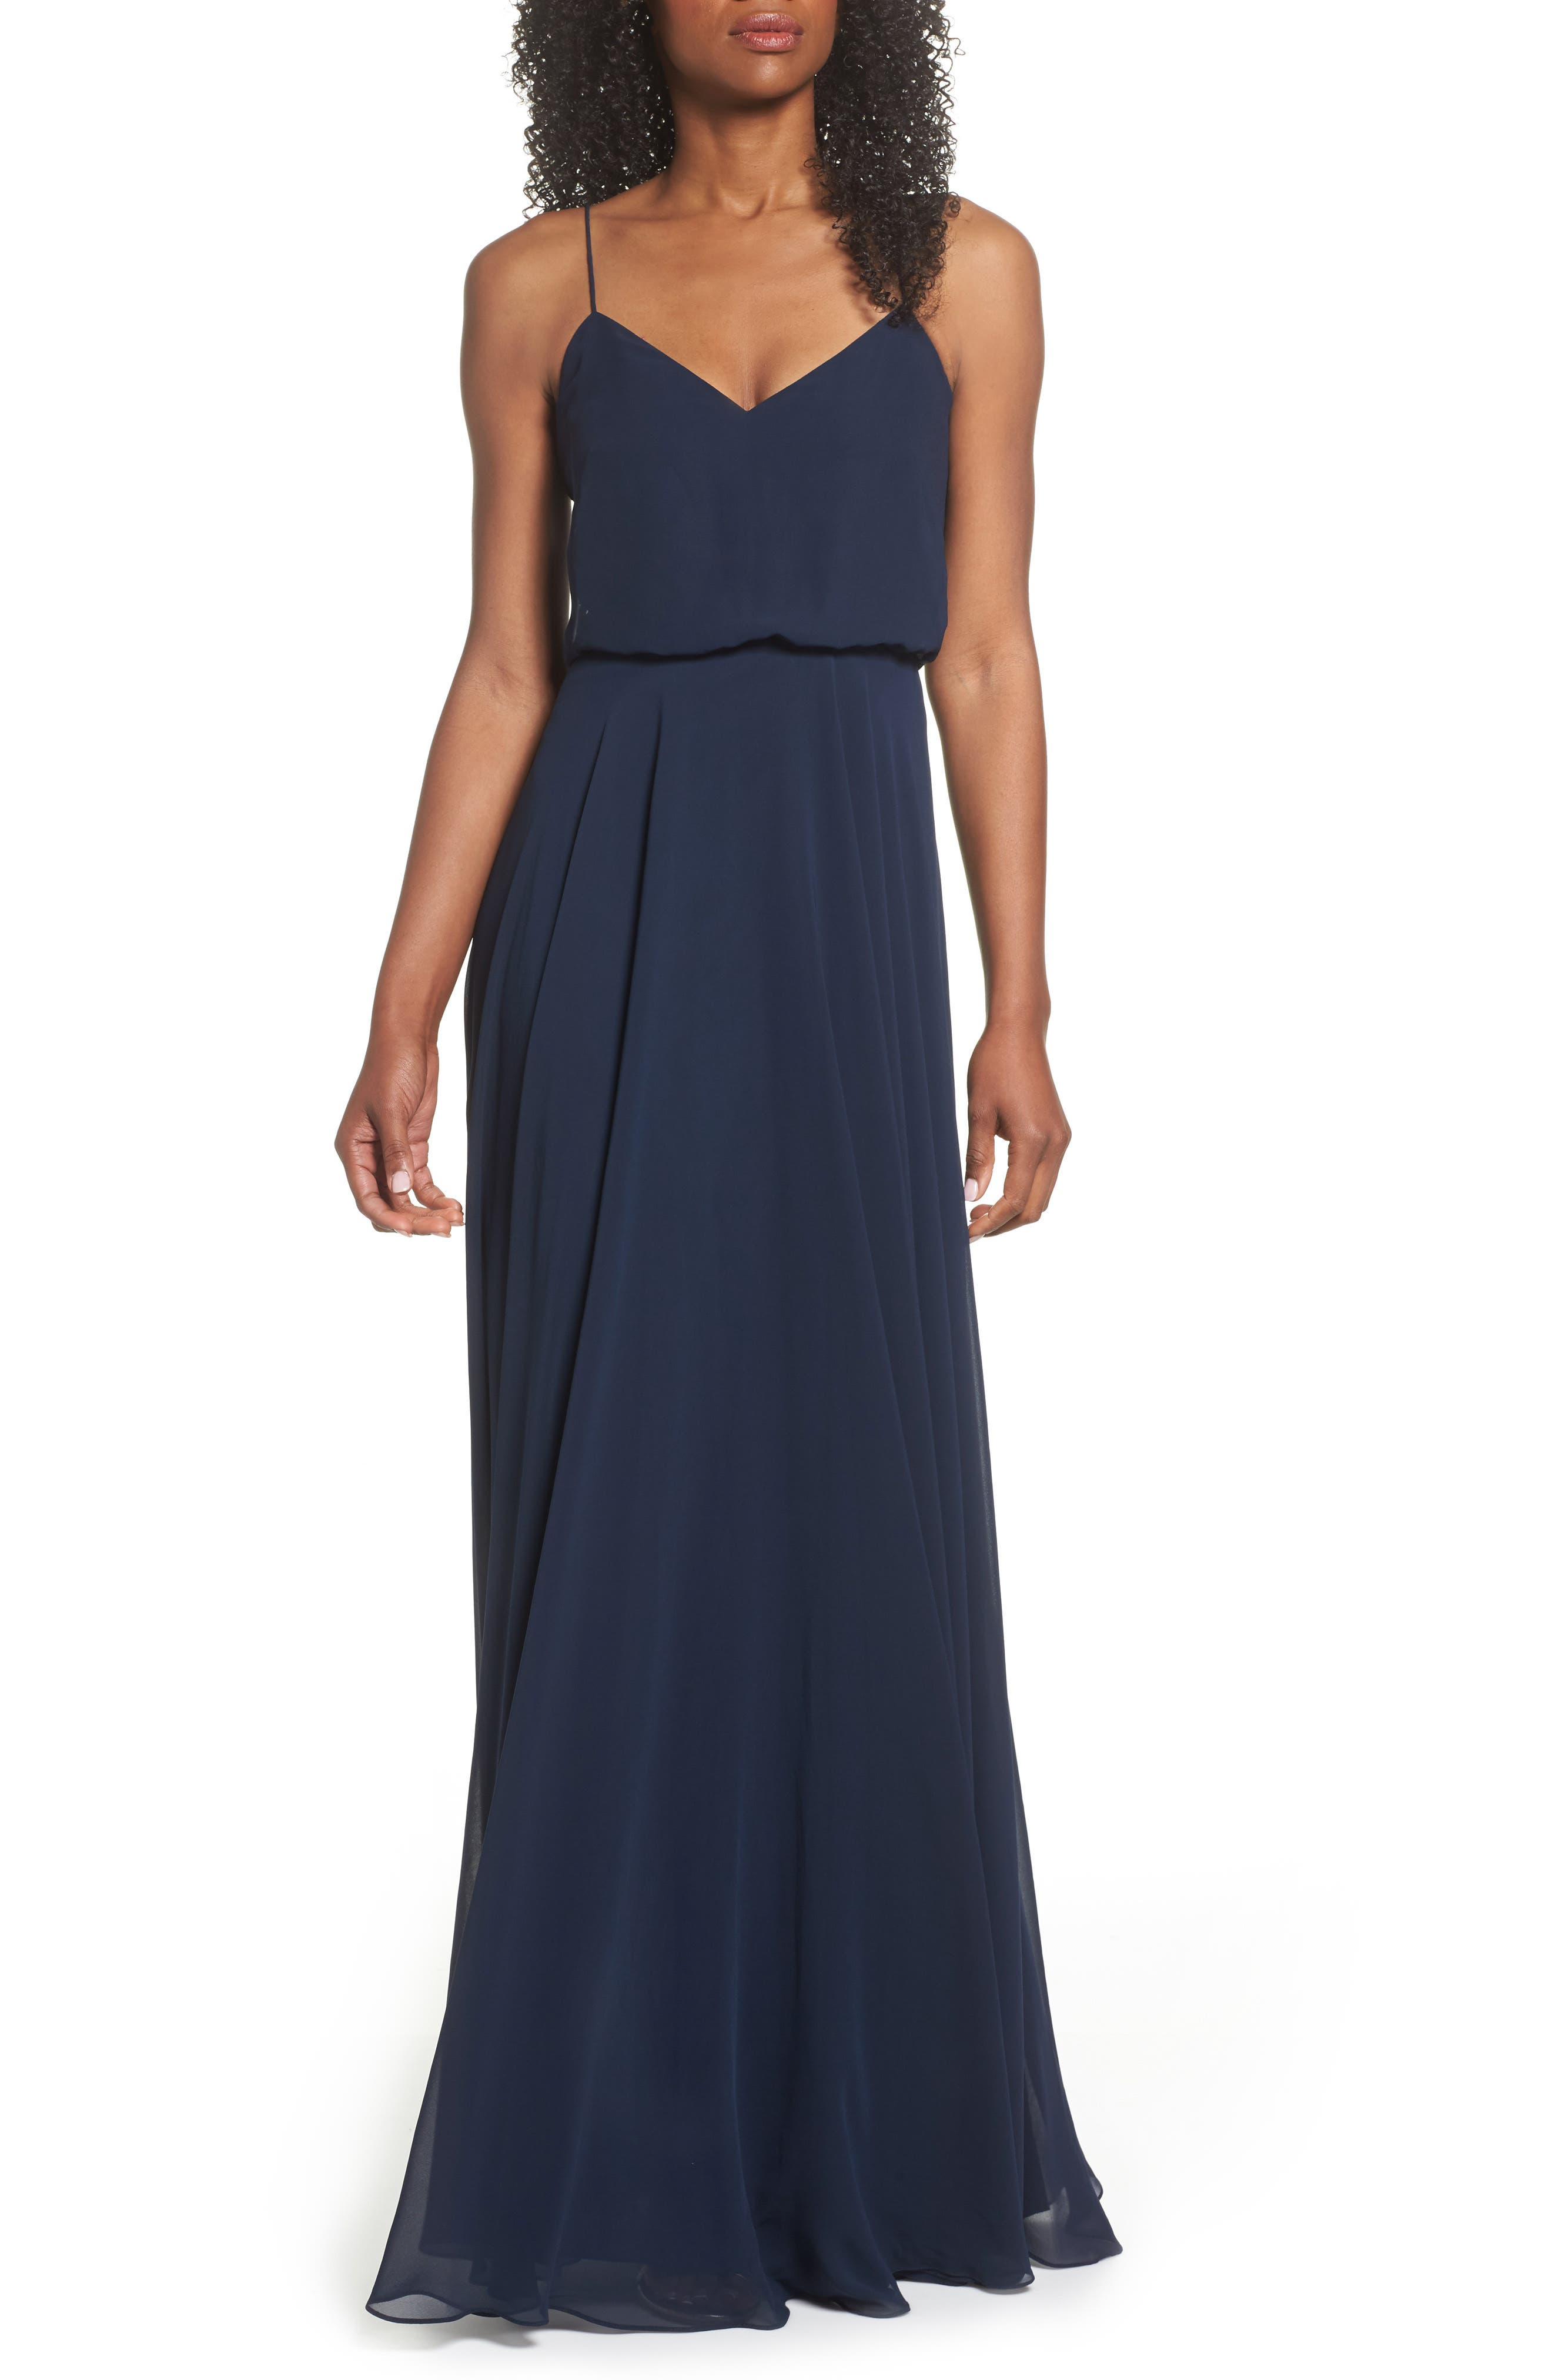 Inesse Chiffon V-Neck Spaghetti Strap Gown,                             Main thumbnail 1, color,                             NAVY